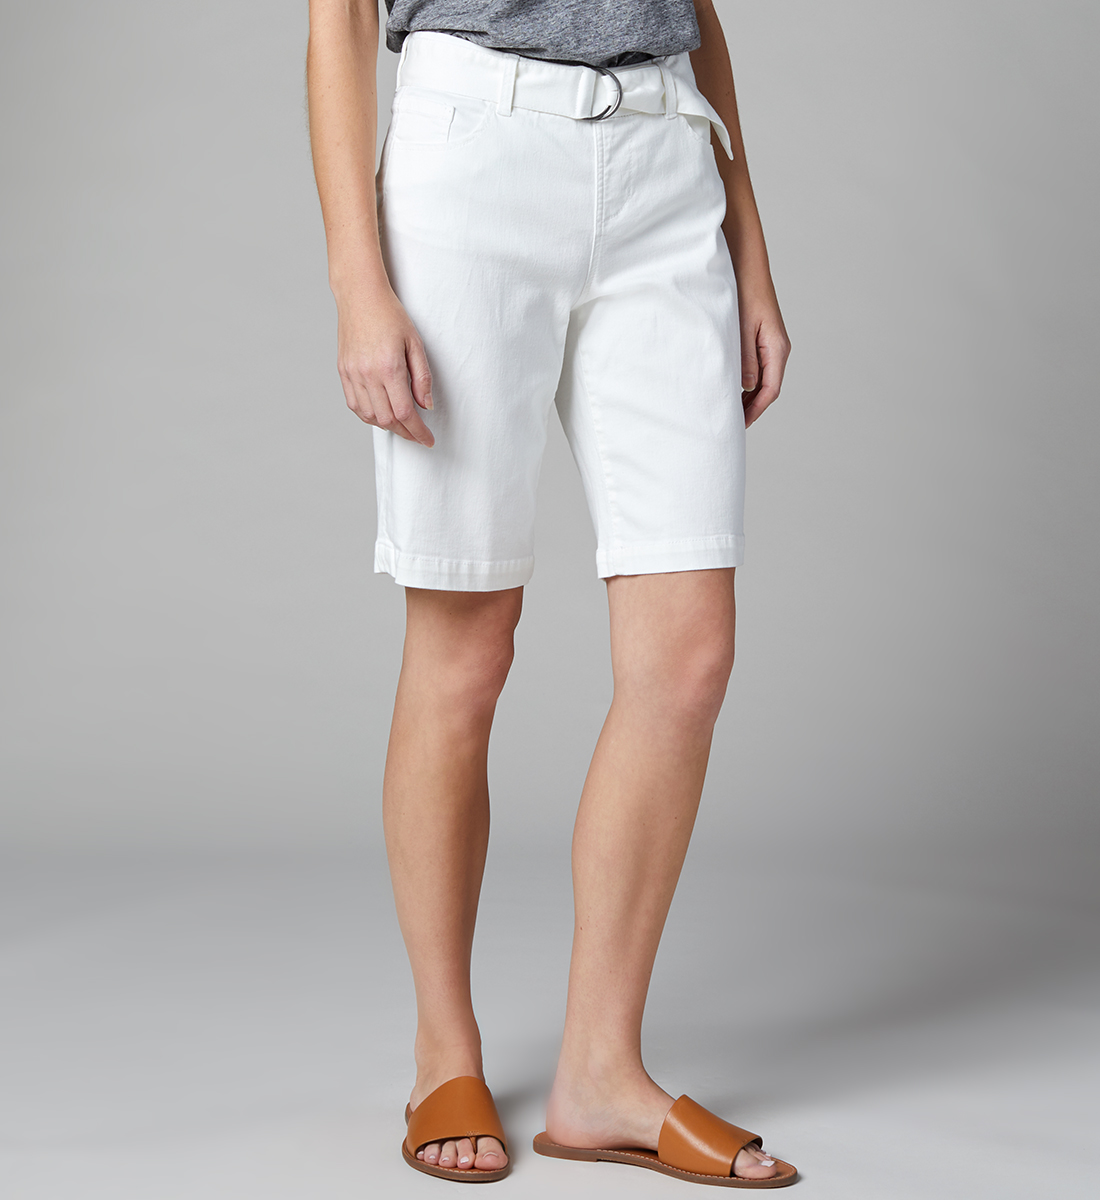 Thelma Mid Rise Bermuda Shorts with Belt Petite, White, hi-res